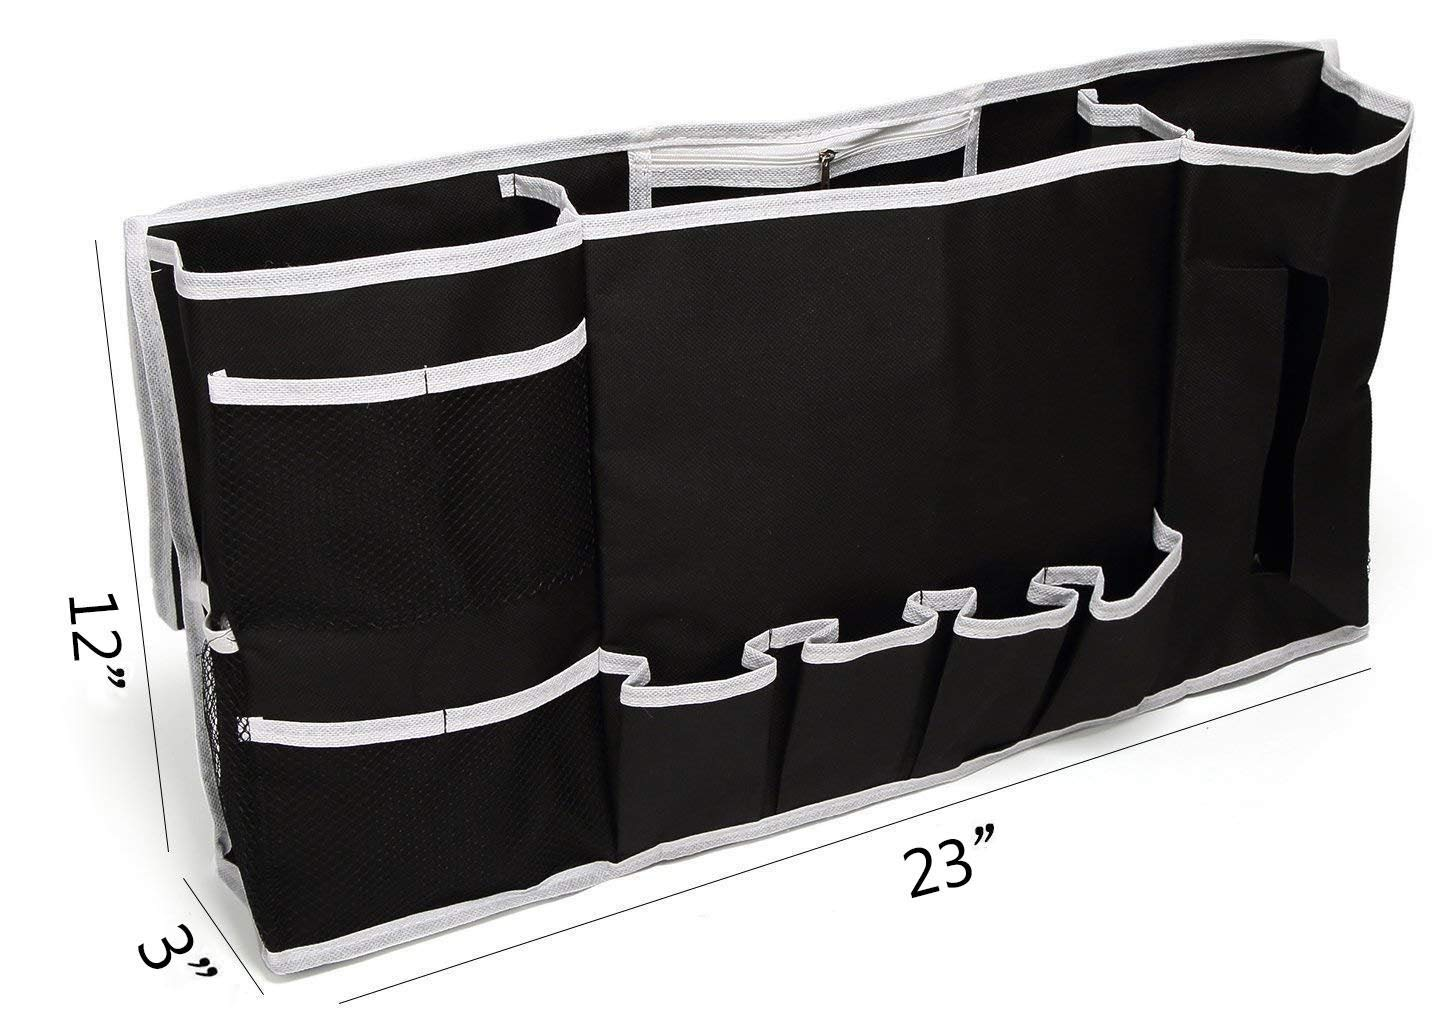 Glin Bedside Caddy, 12 Various Pockets Perfect College Dorm Room Bunk Bed Bedside Organizer,Durable Stable Material Bed Caddy,Large Size Holds Your Laptop,Books,Tablet,Phone More (black1)